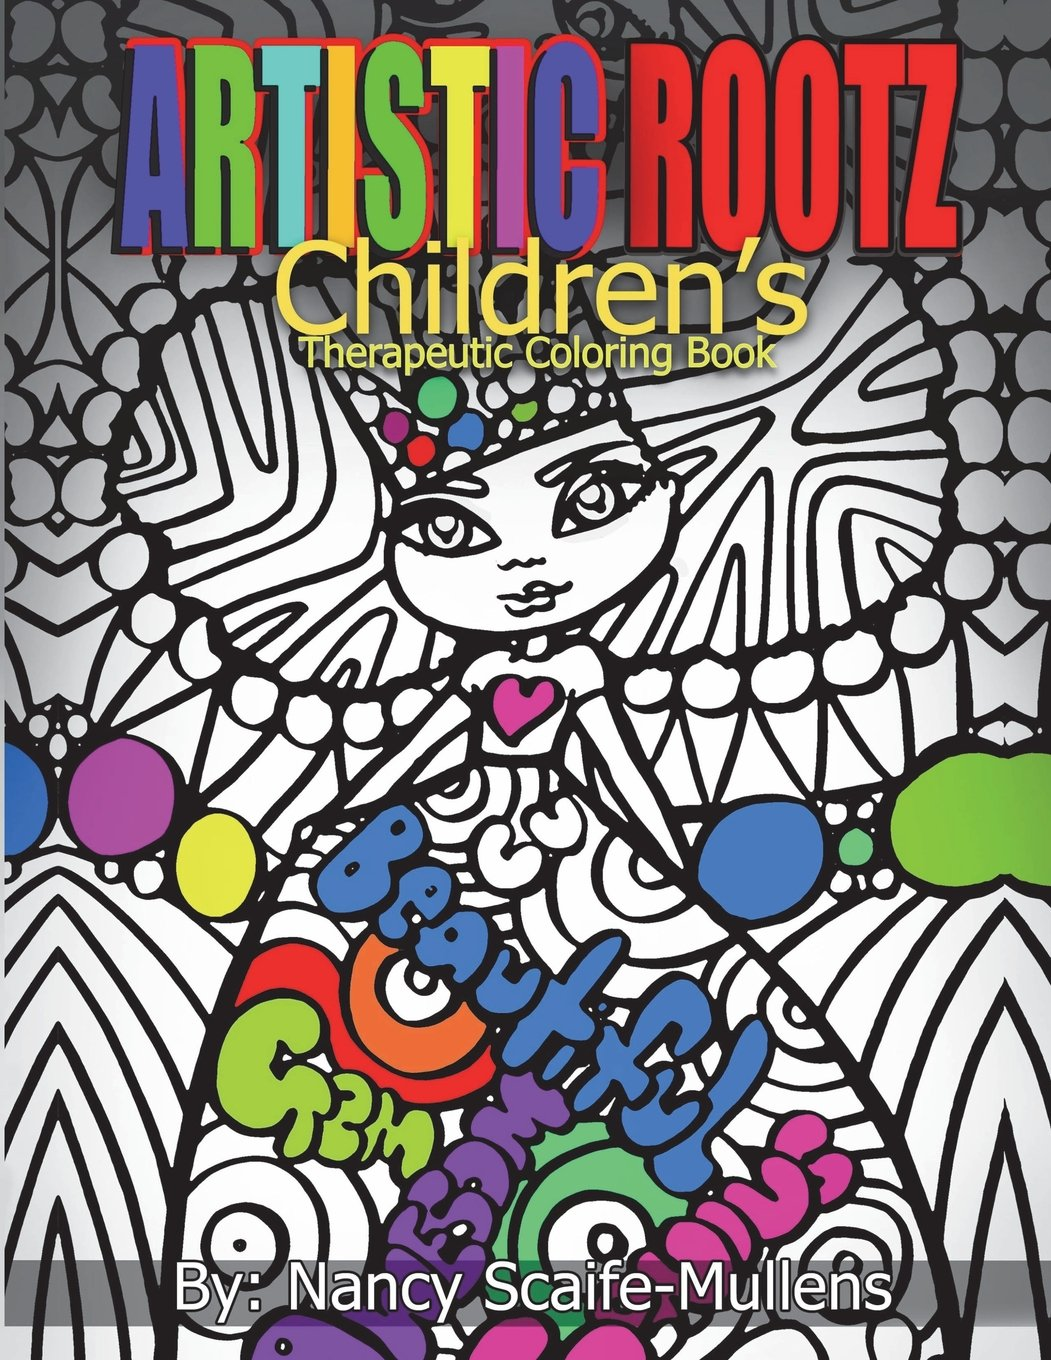 - Artistic Rootz Children's Therapeutic Coloring Books: Nancy Scaife